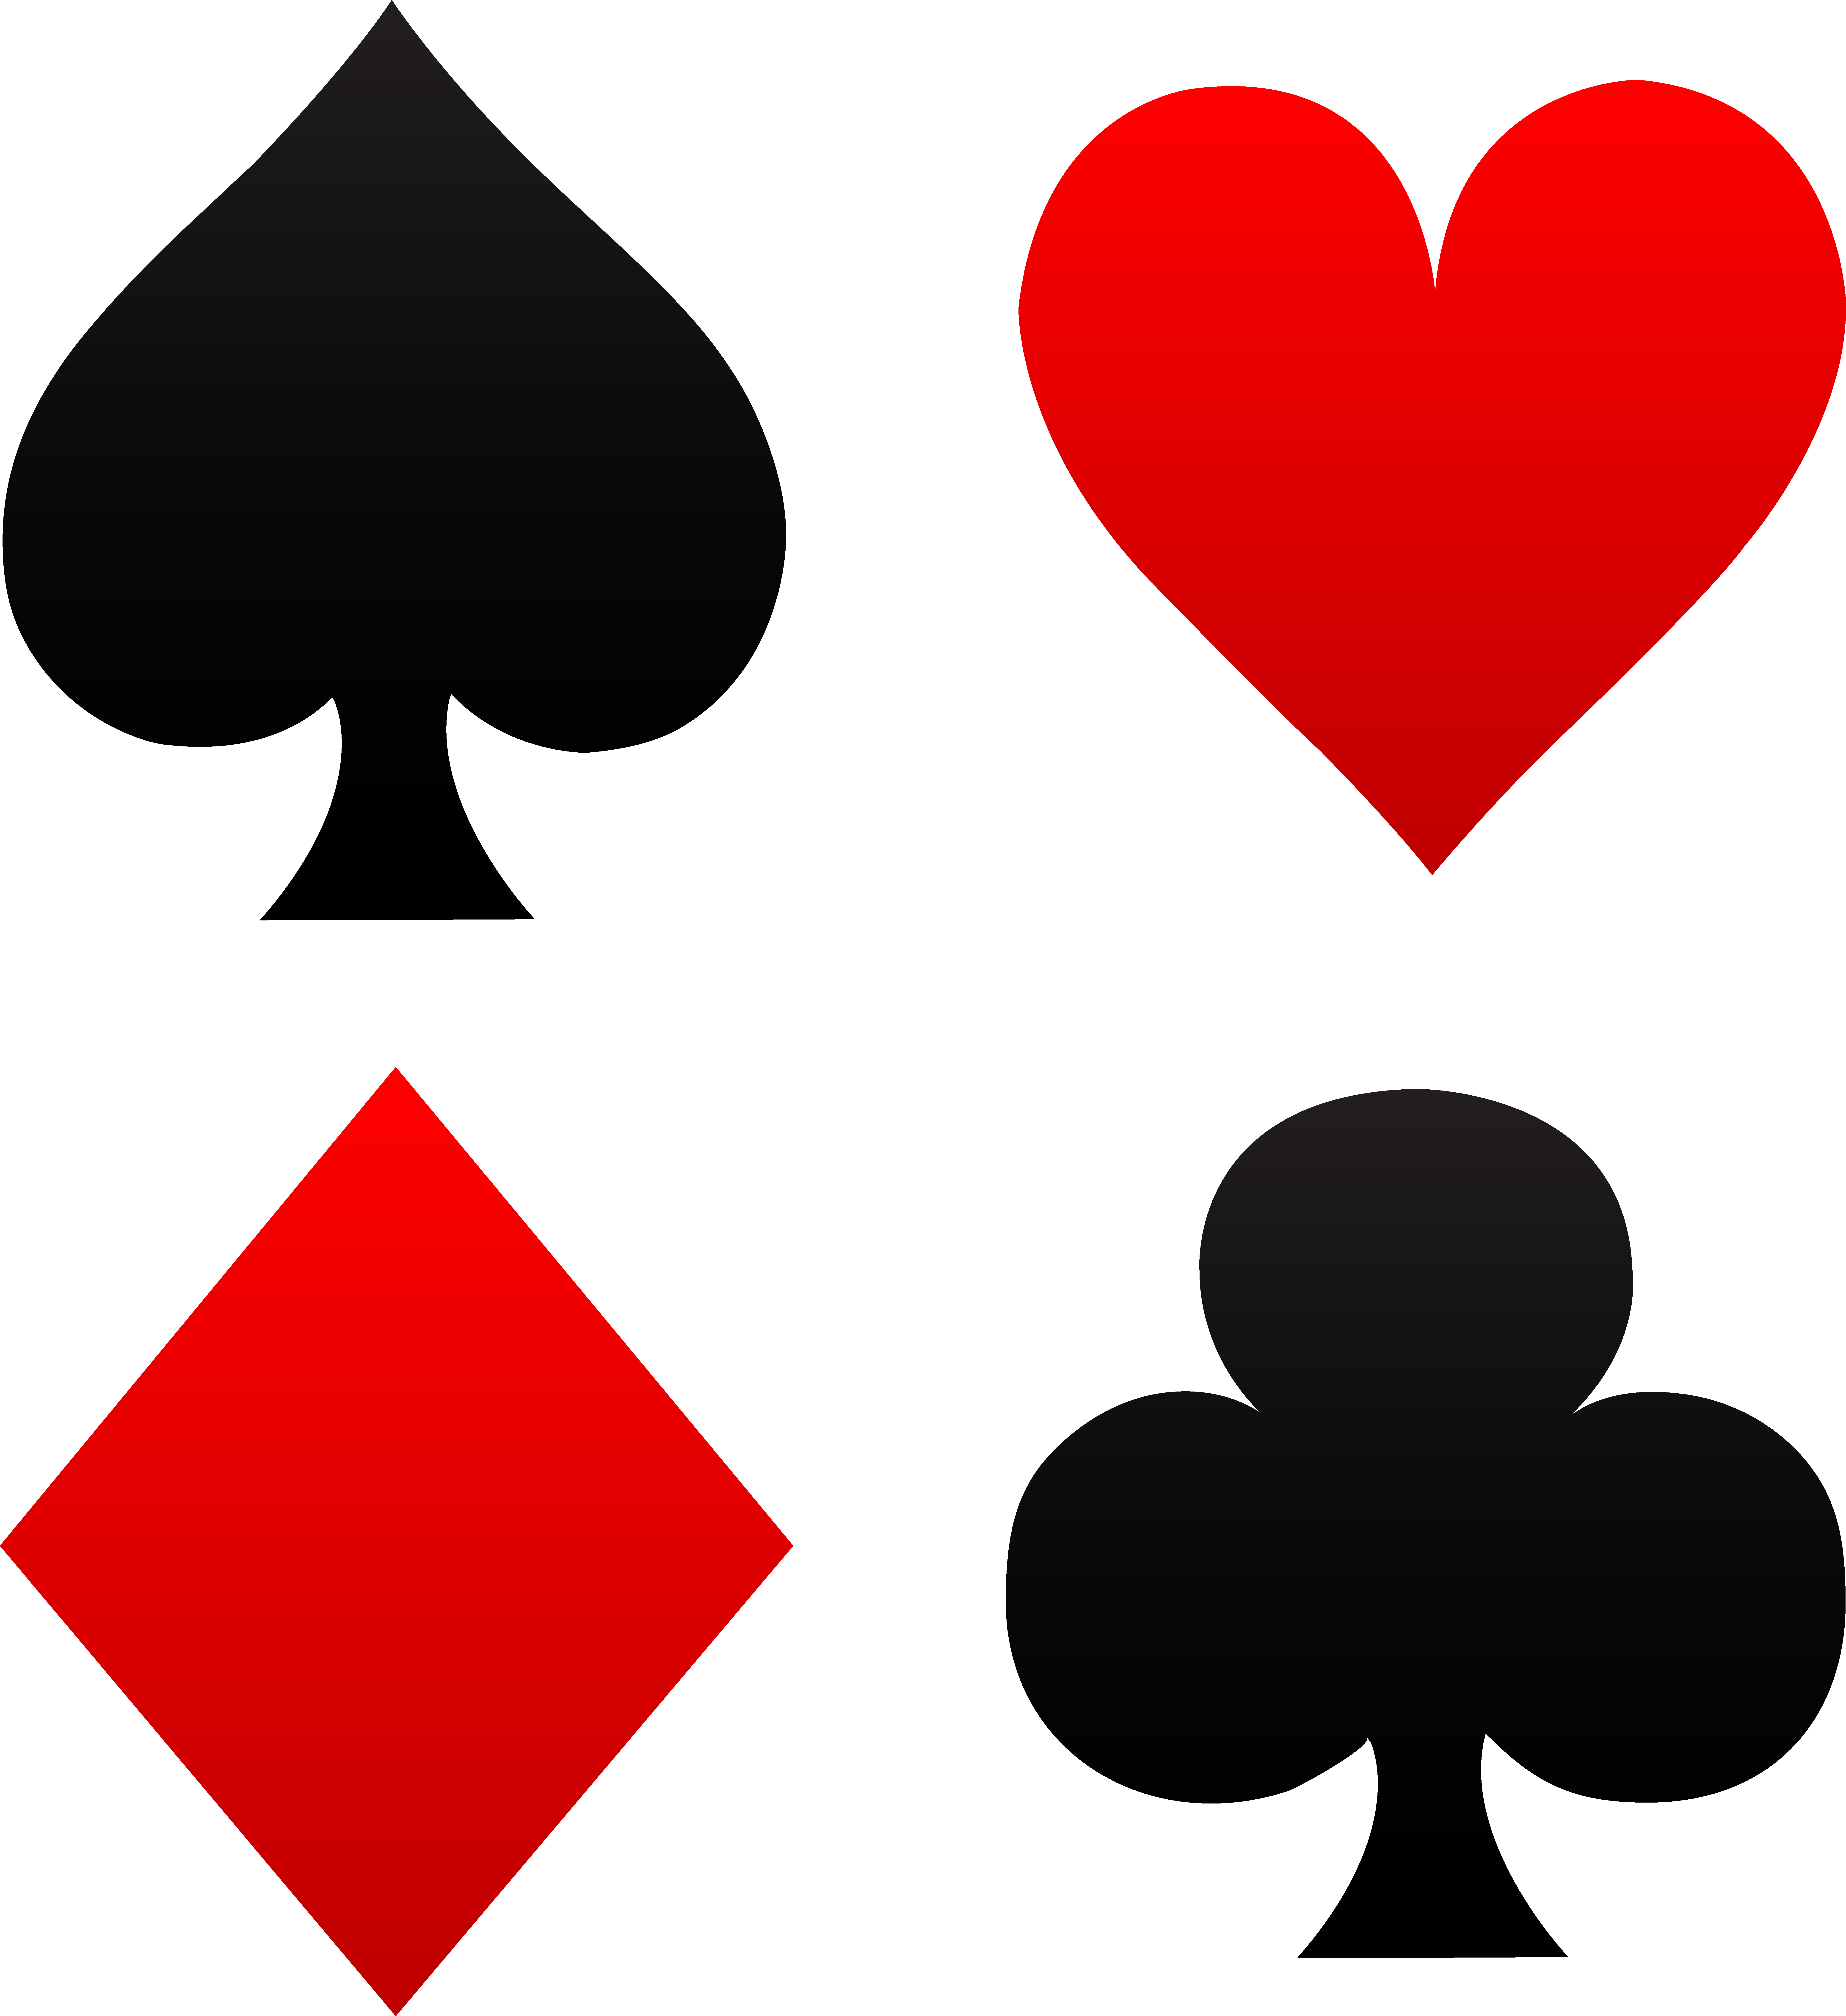 Free Playing Cards, Download Free Clip Art, Free Clip Art on.